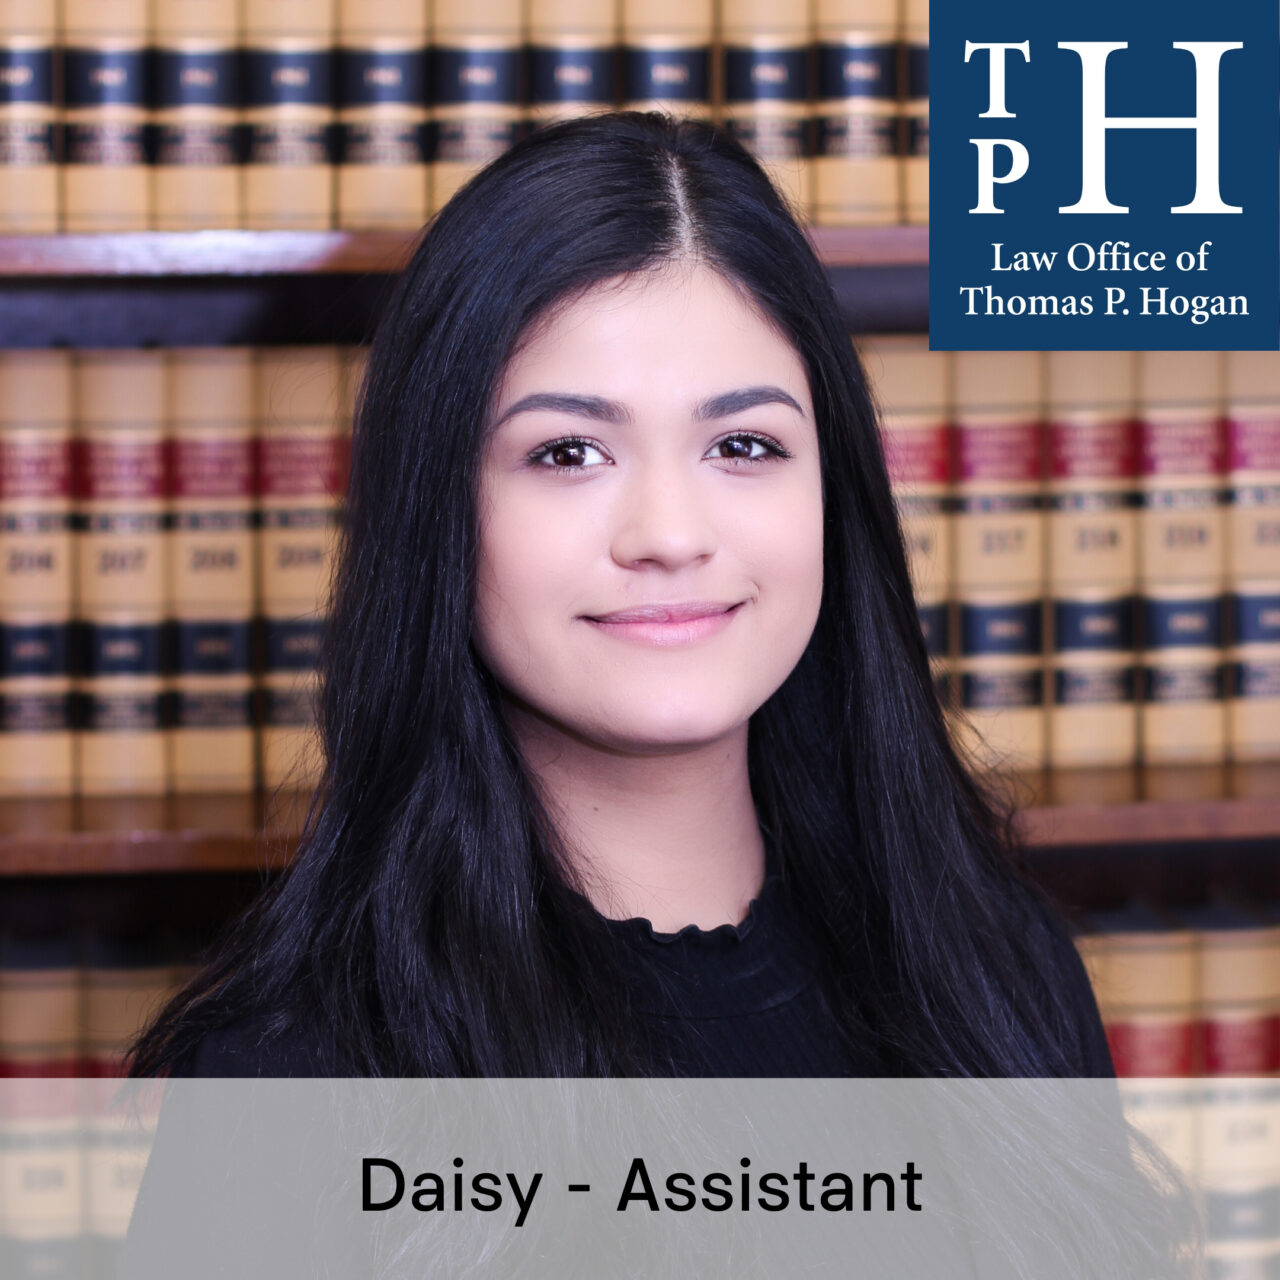 Daisy Assistant Law Office of Thomas P. Hogan